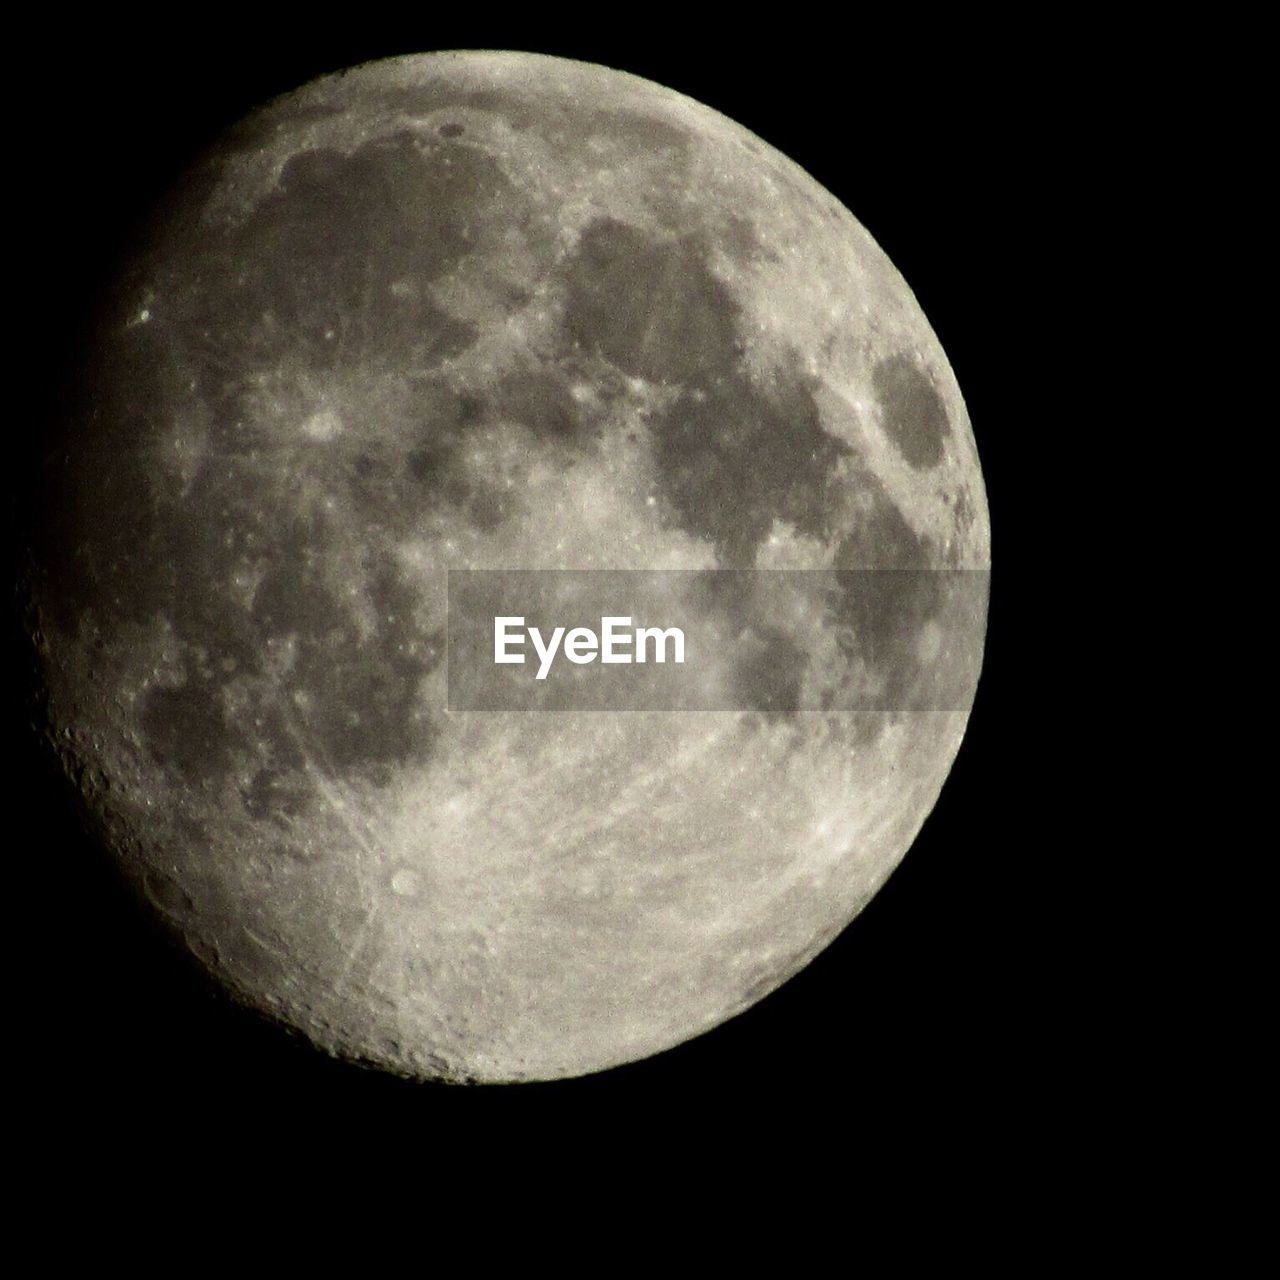 moon, night, astronomy, moon surface, planetary moon, beauty in nature, full moon, nature, circle, majestic, scenics, tranquility, space exploration, tranquil scene, outdoors, space, low angle view, no people, half moon, sky, close-up, discovery, moonlight, clear sky, satellite view